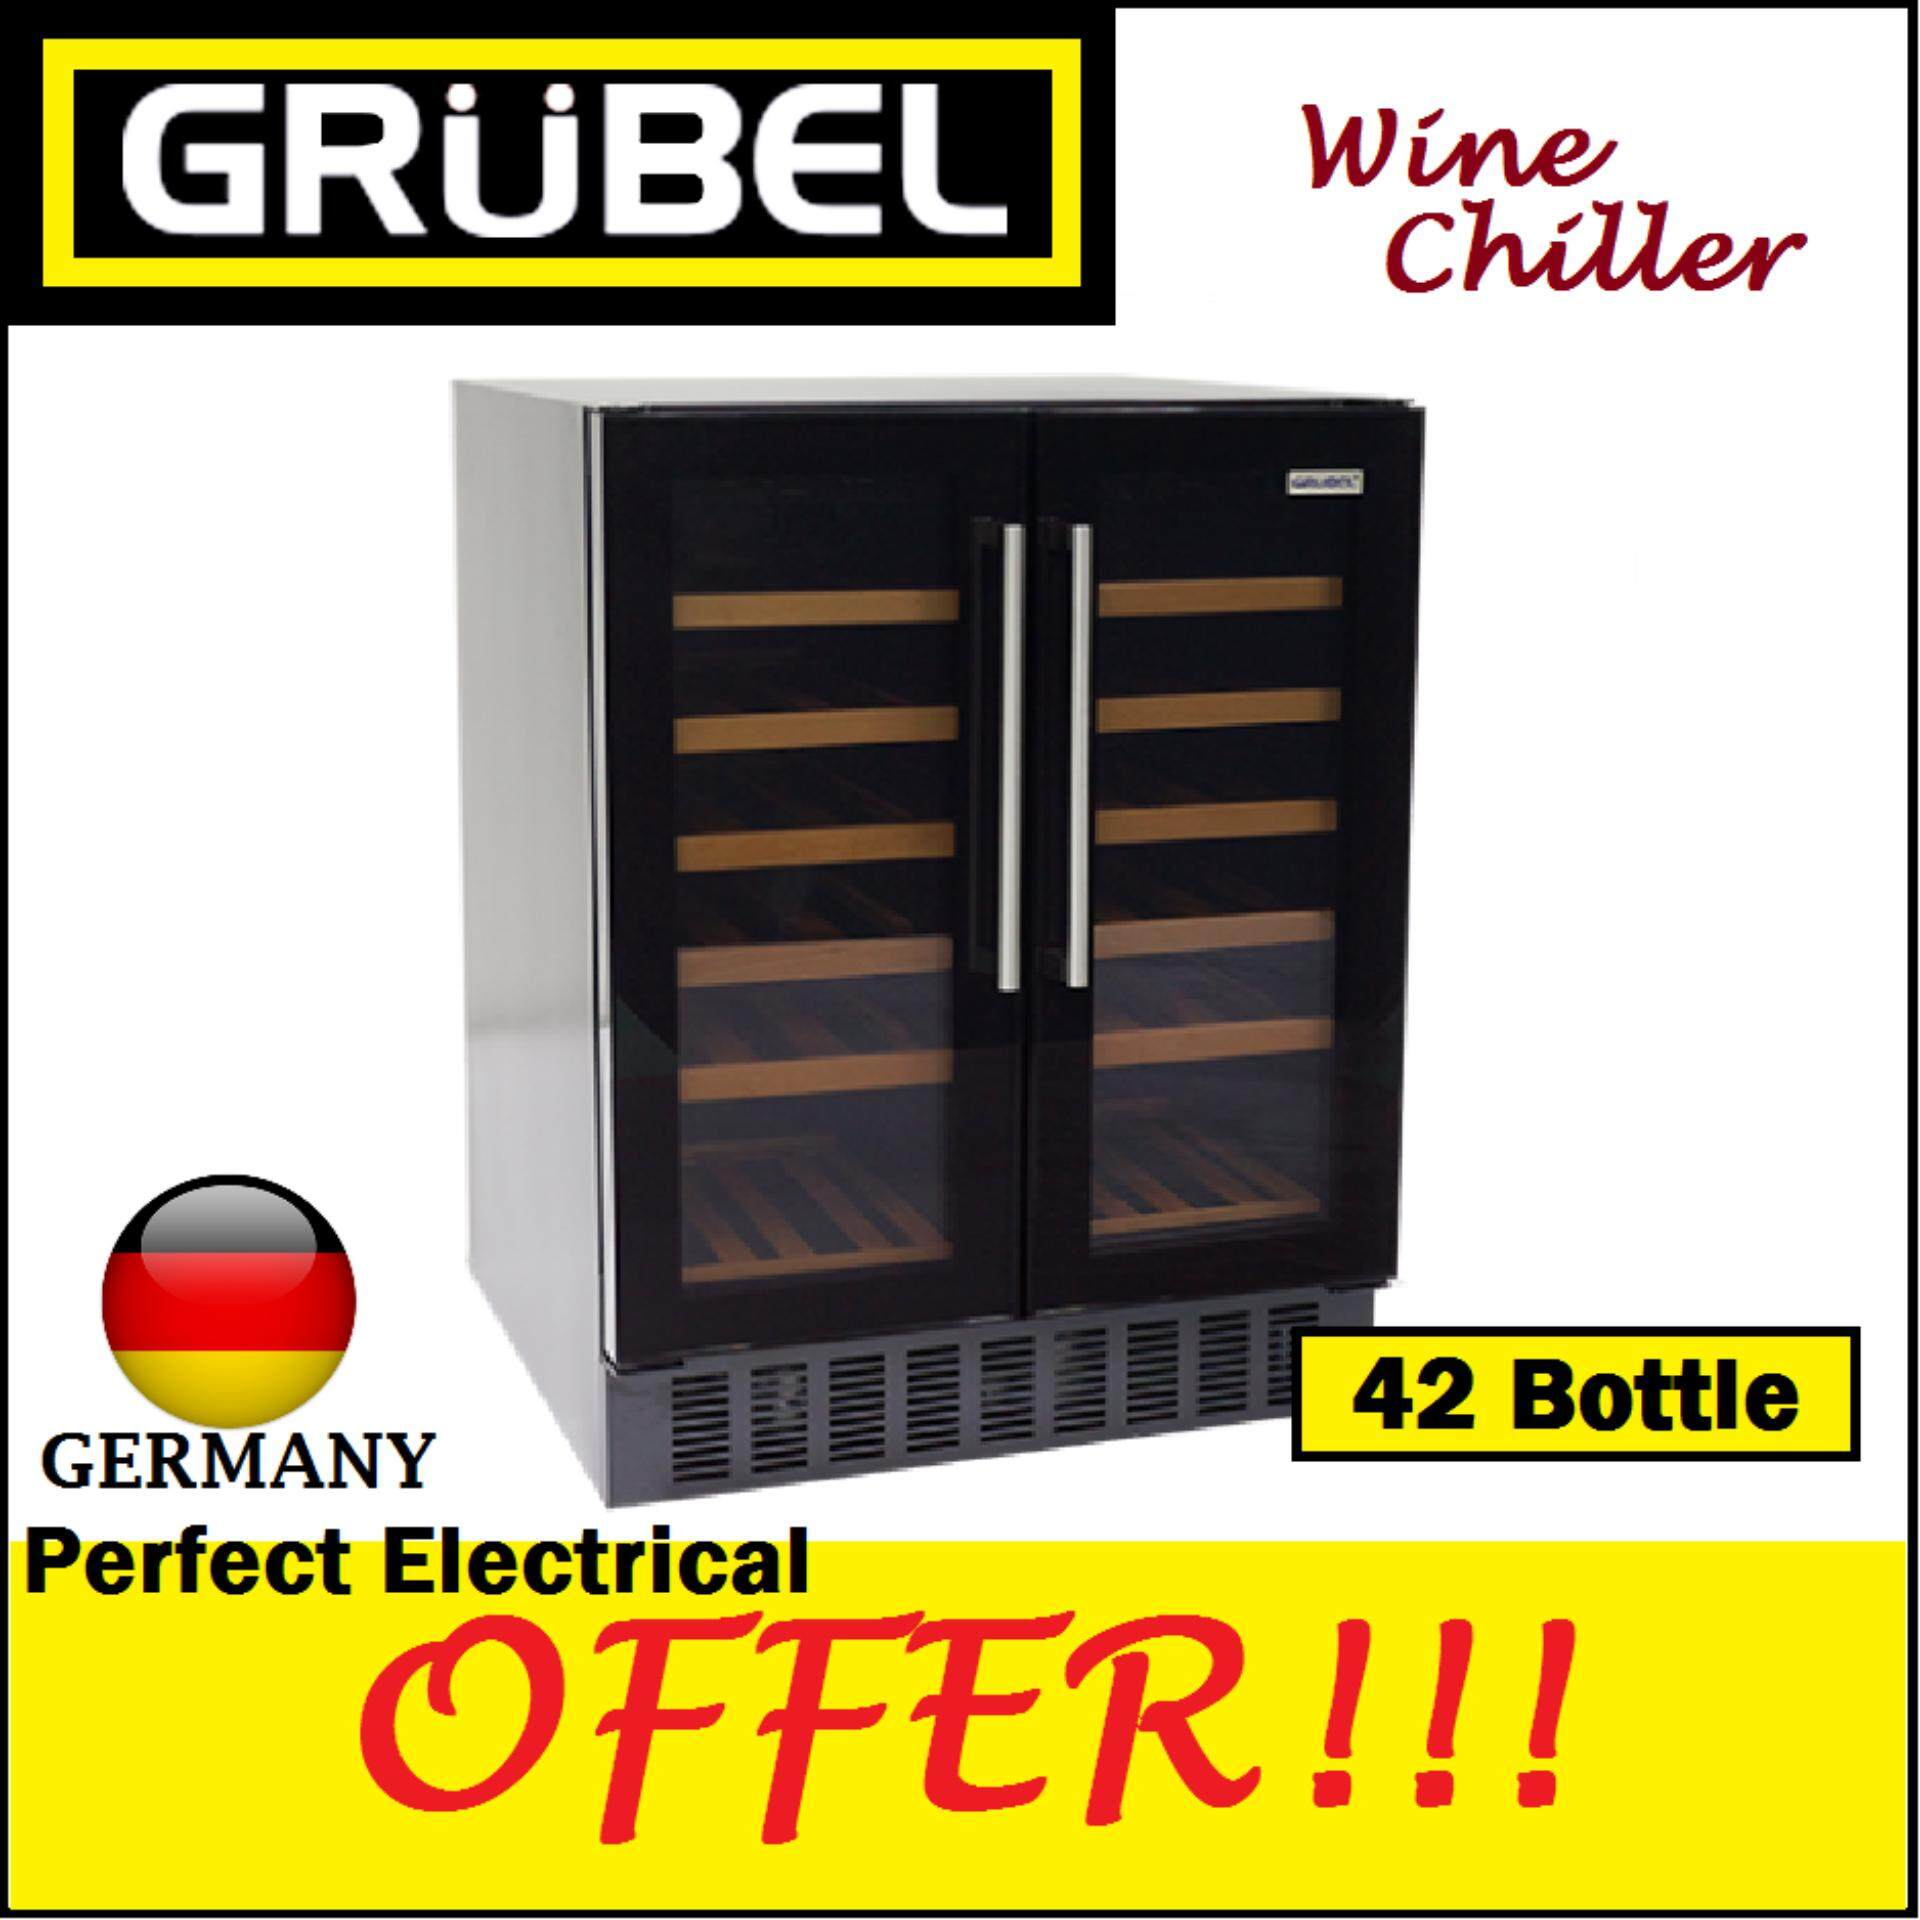 Grubel Wine Chiller Gwc-Dt42tbk - 42 Bottles By Perfect Electrical Store.